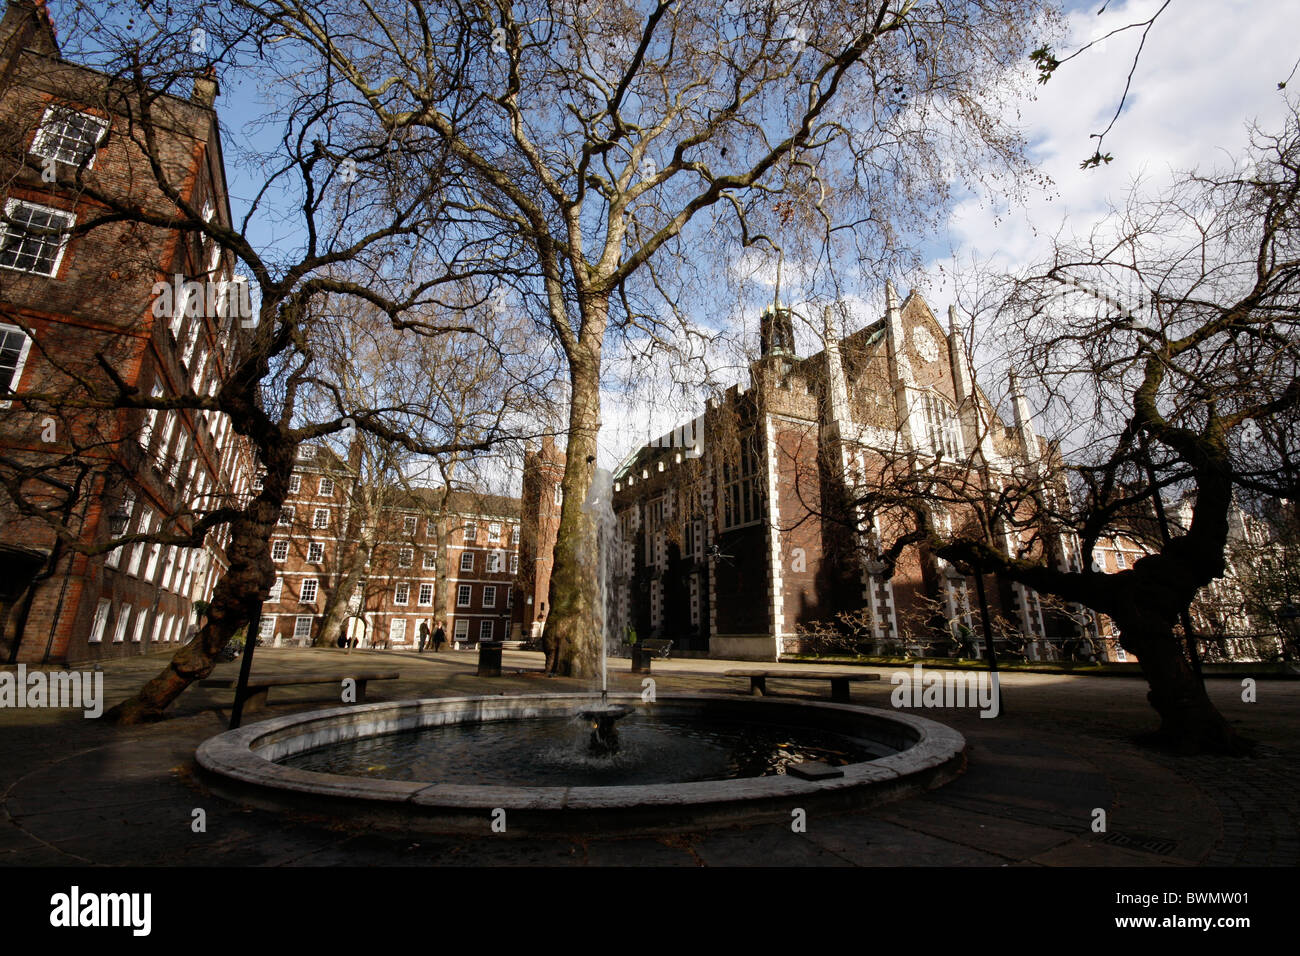 Fountain Court and Middle Temple Hall in the legal quarter of Middle Temple just off London's Fleet Street - Stock Image